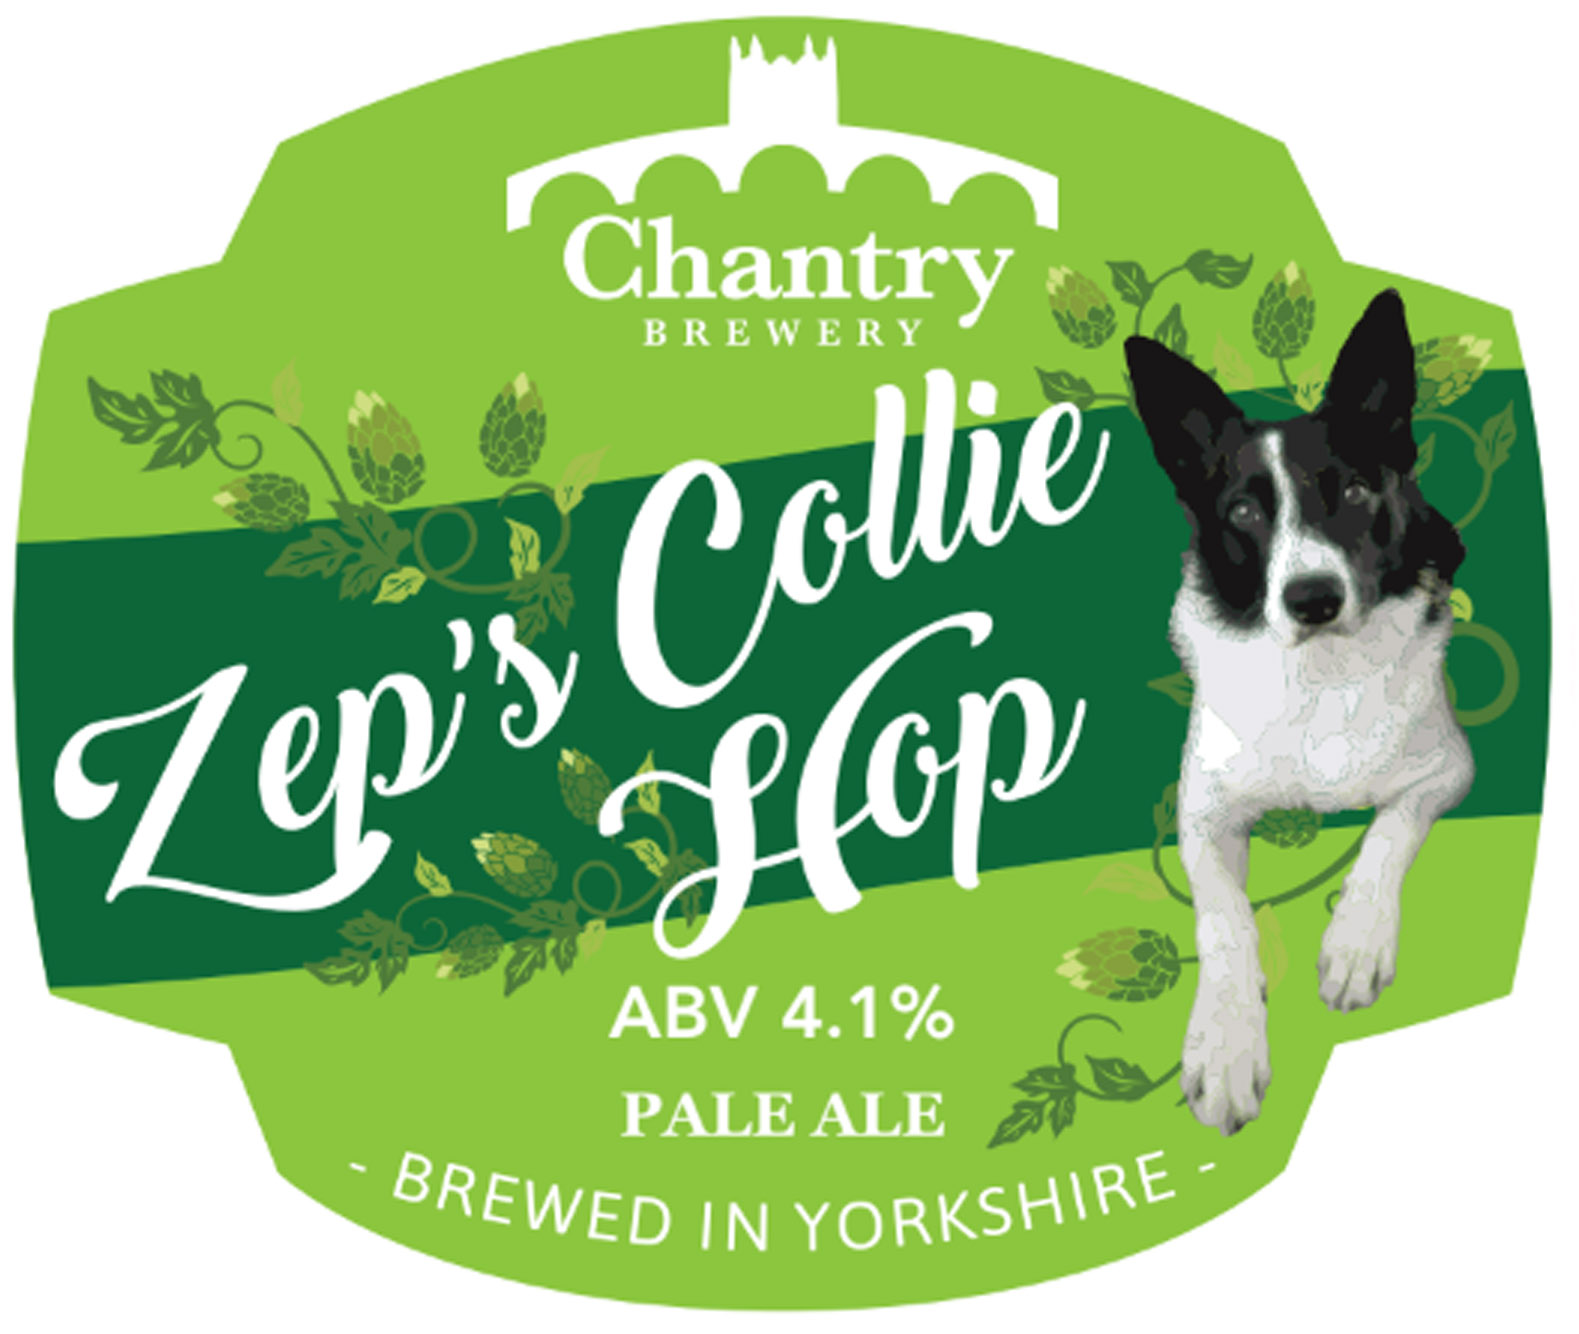 Chantry Brewery Zep's Collie Hop